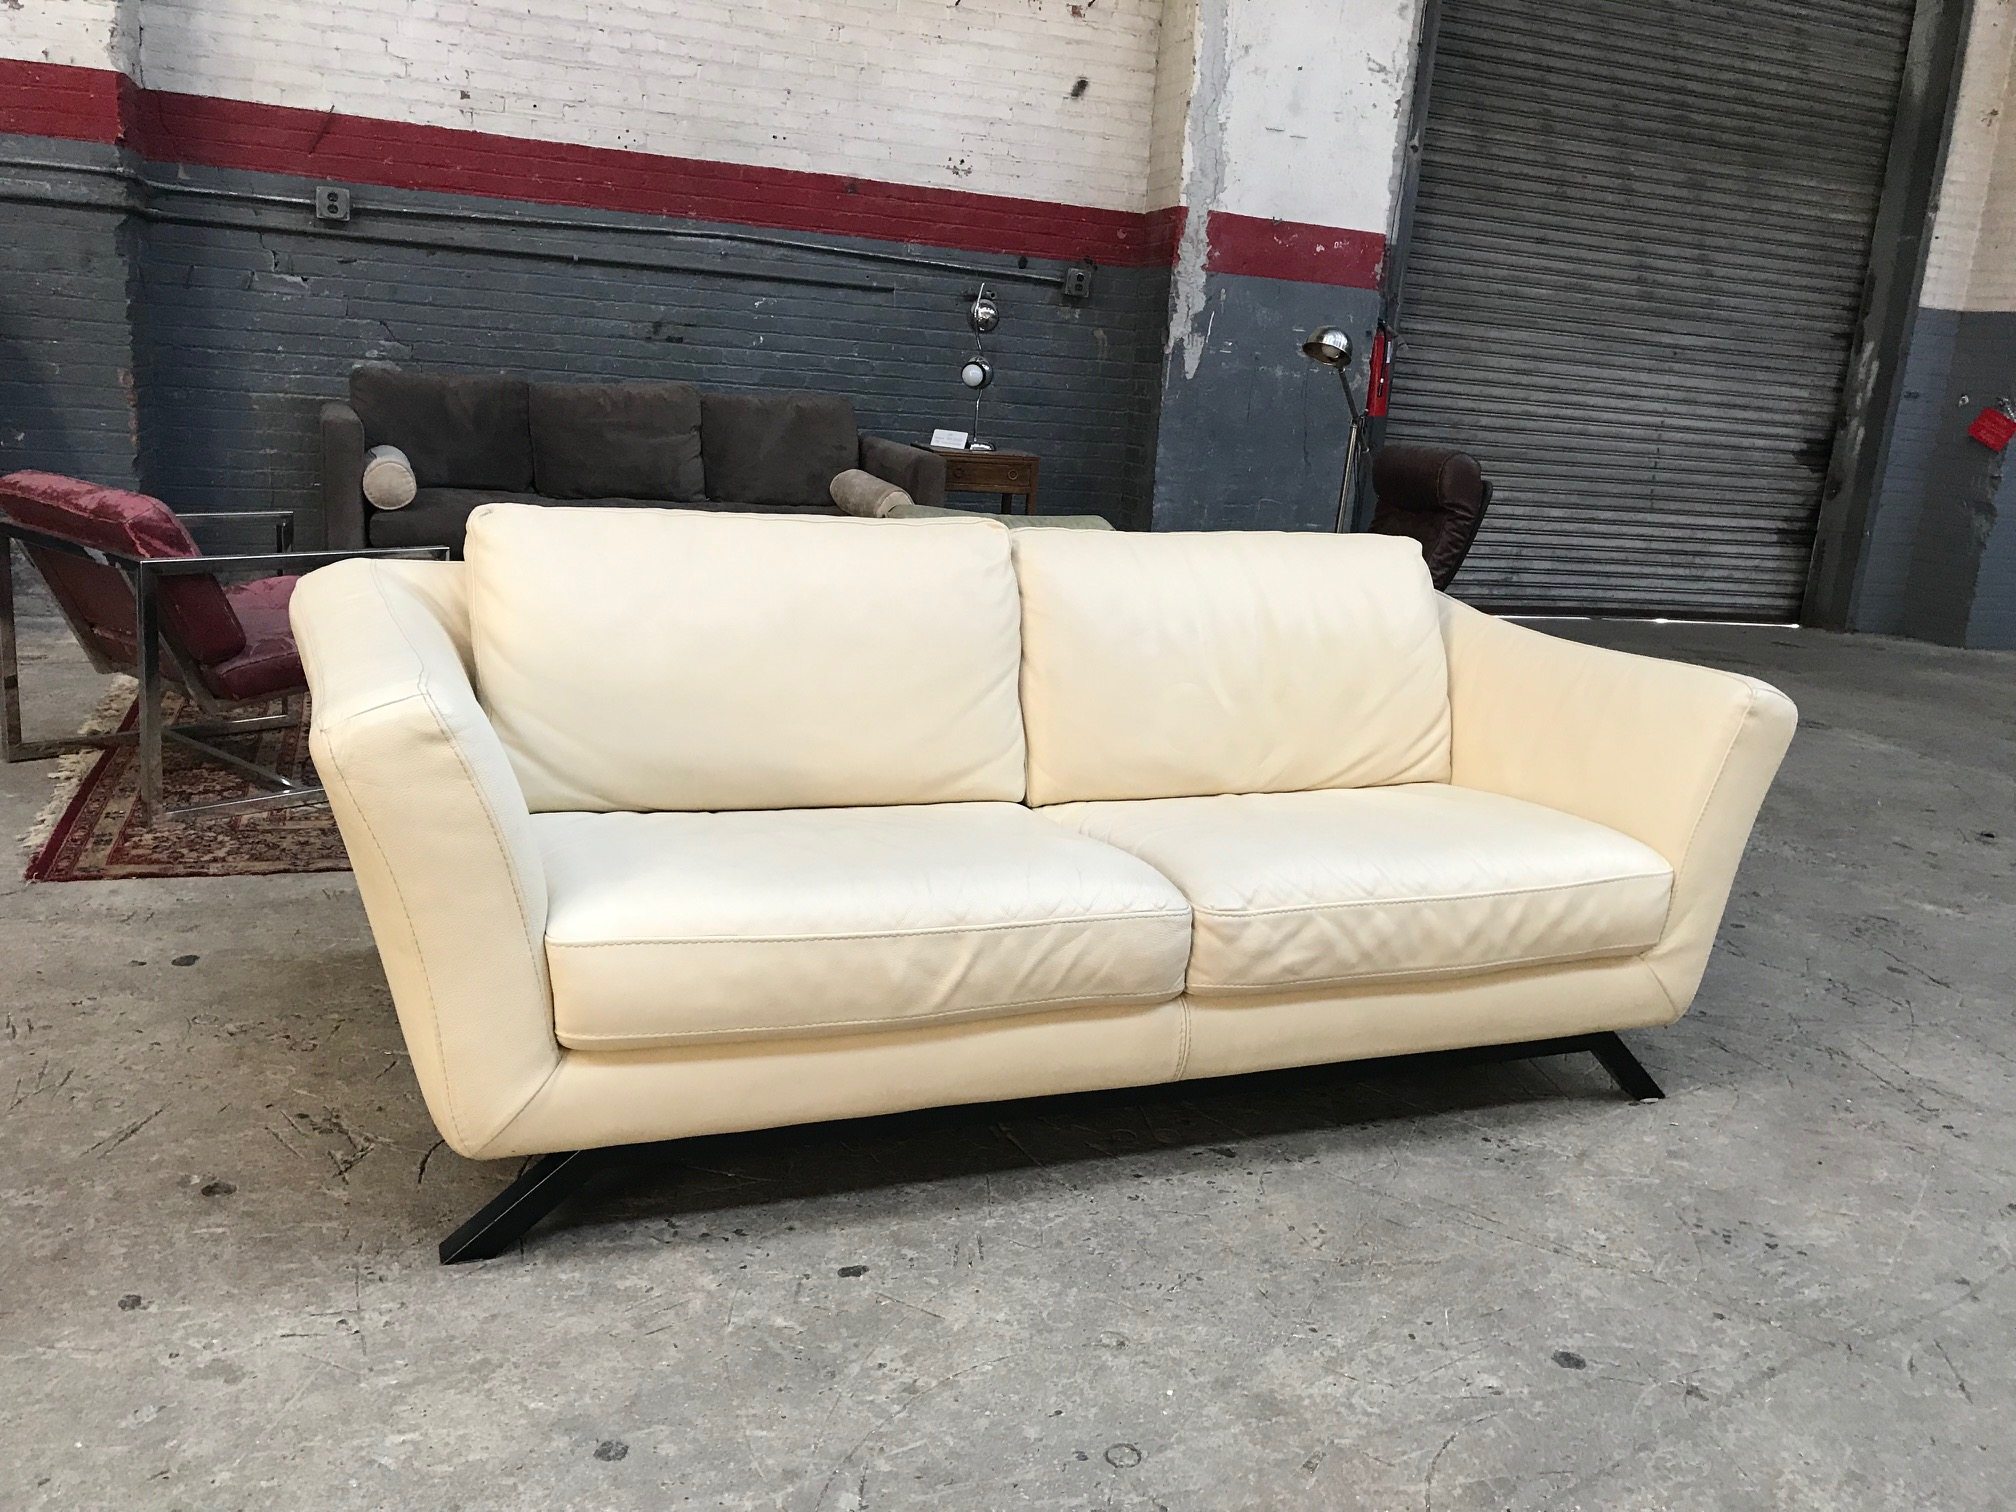 White Leather Couch $400